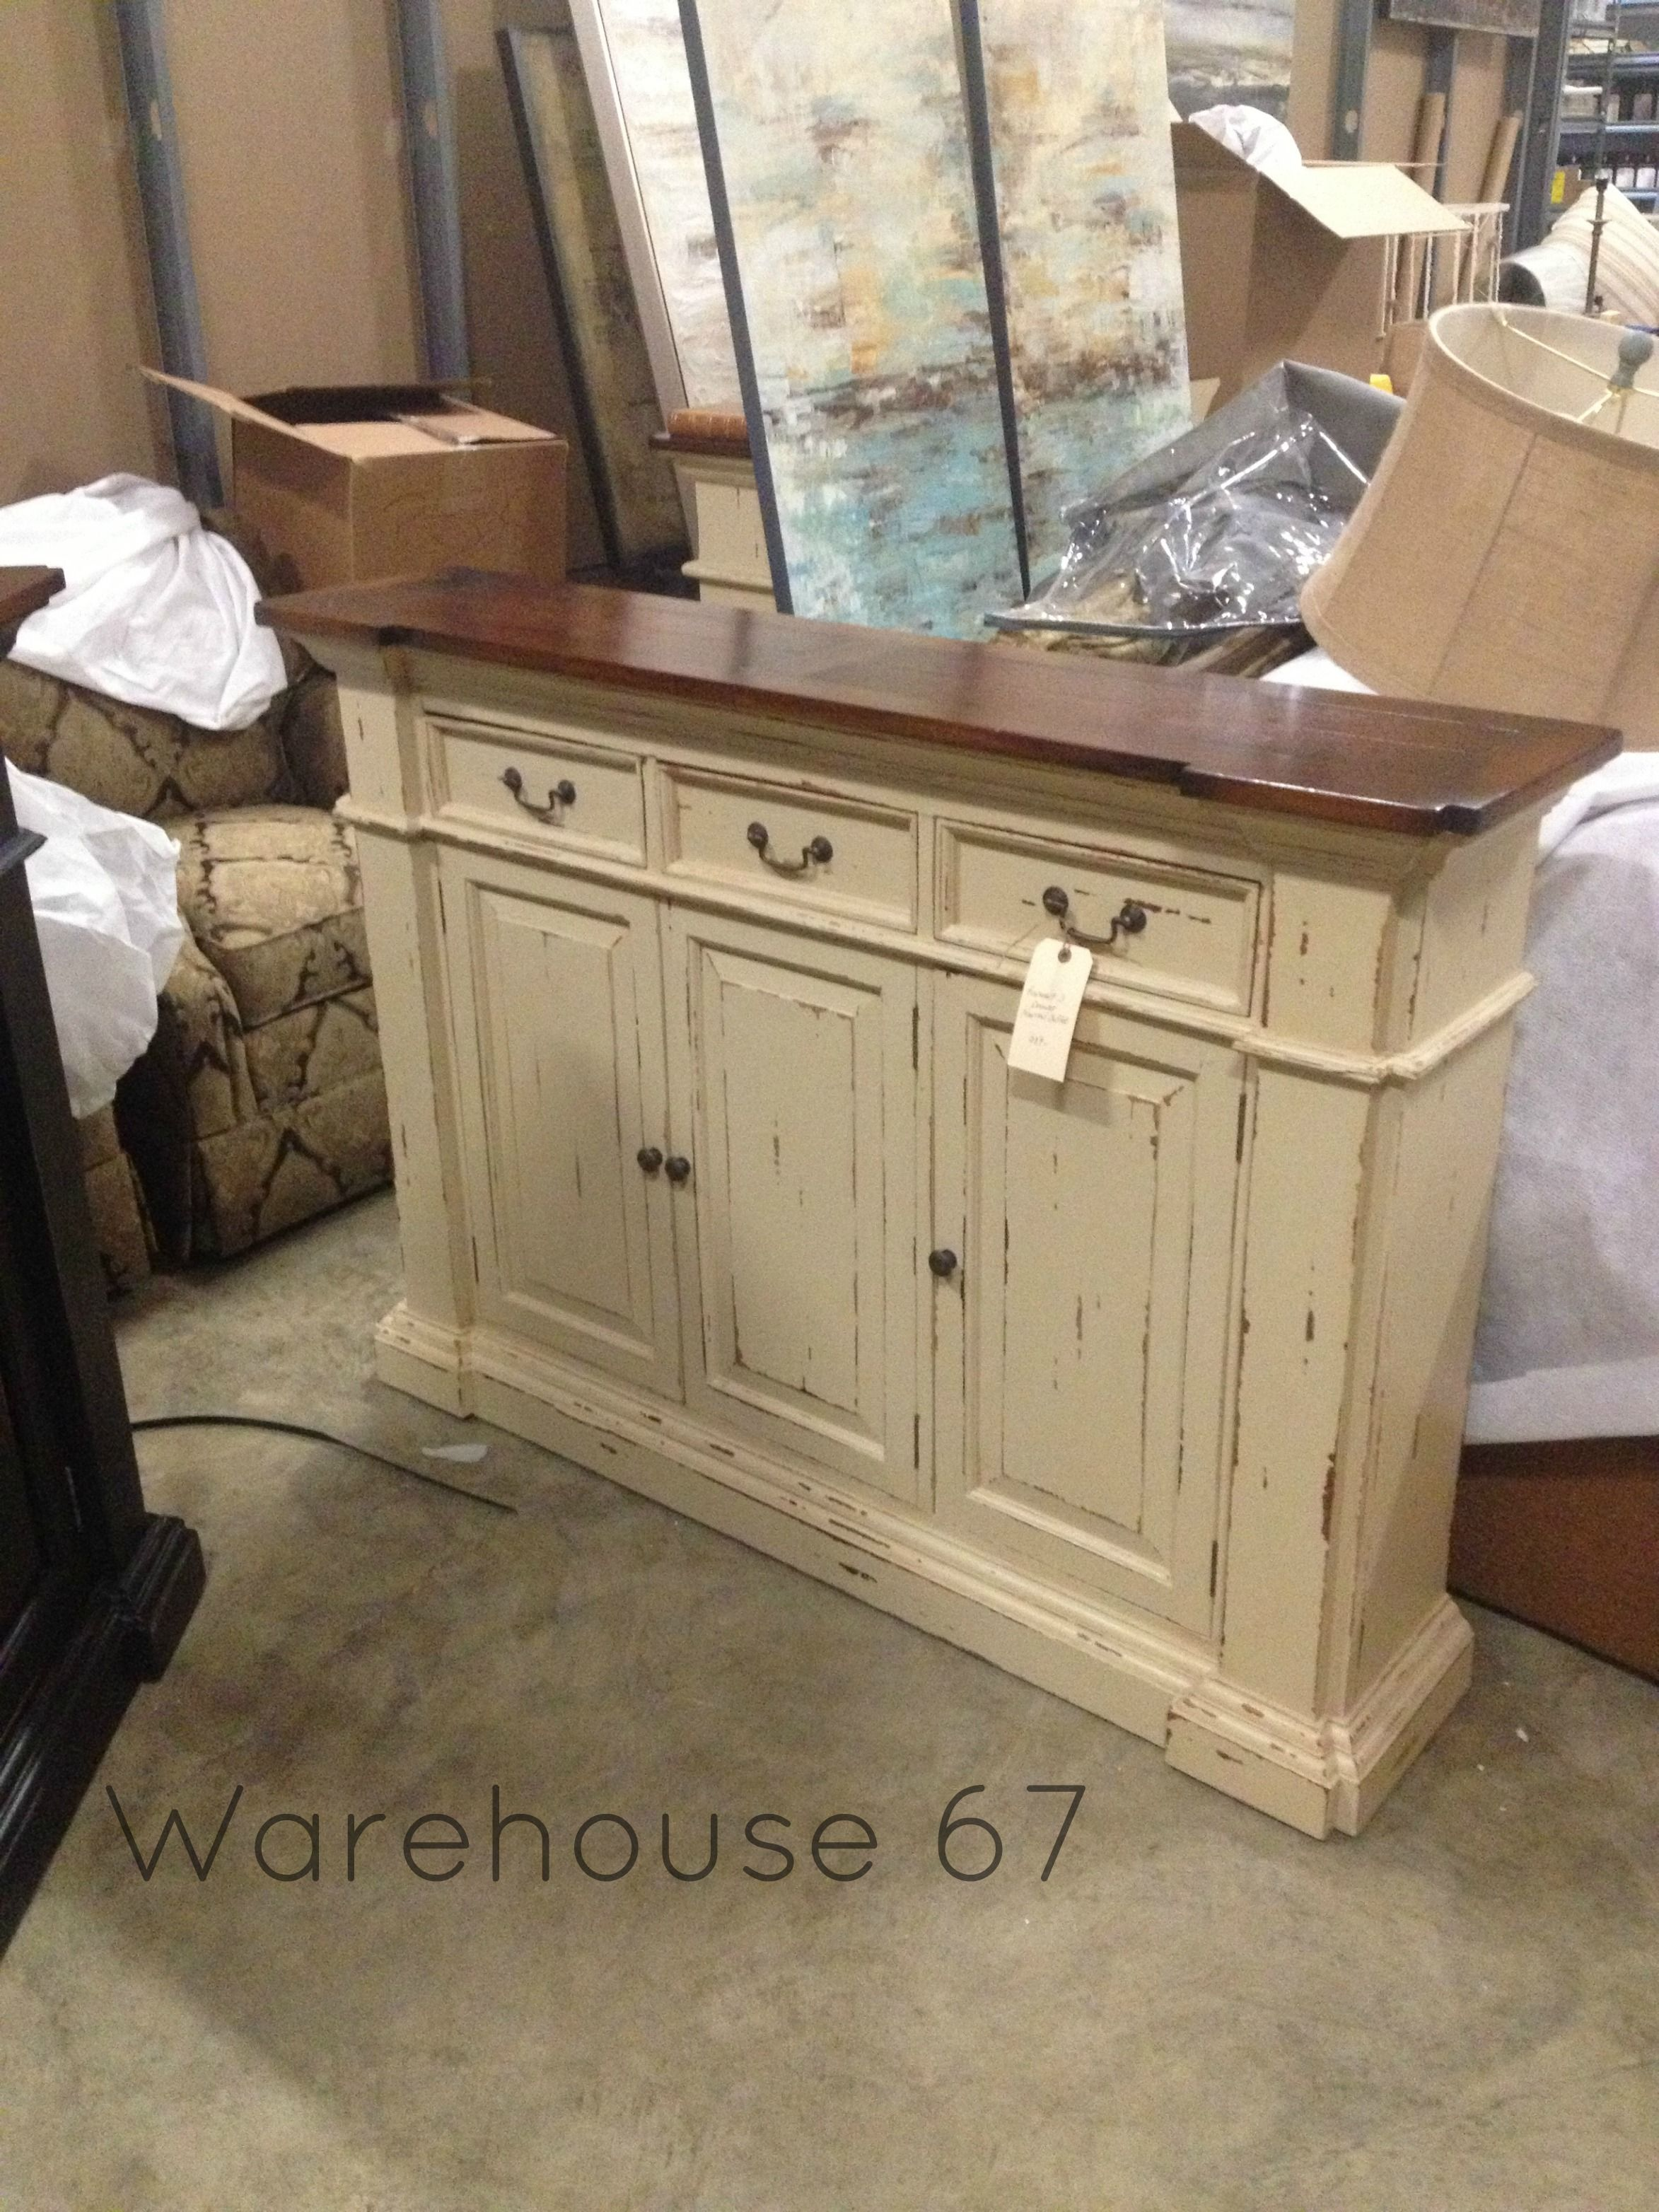 Roosevelt 3 Drawer Narrow Buffet Here At Warehouse 67 Only 989